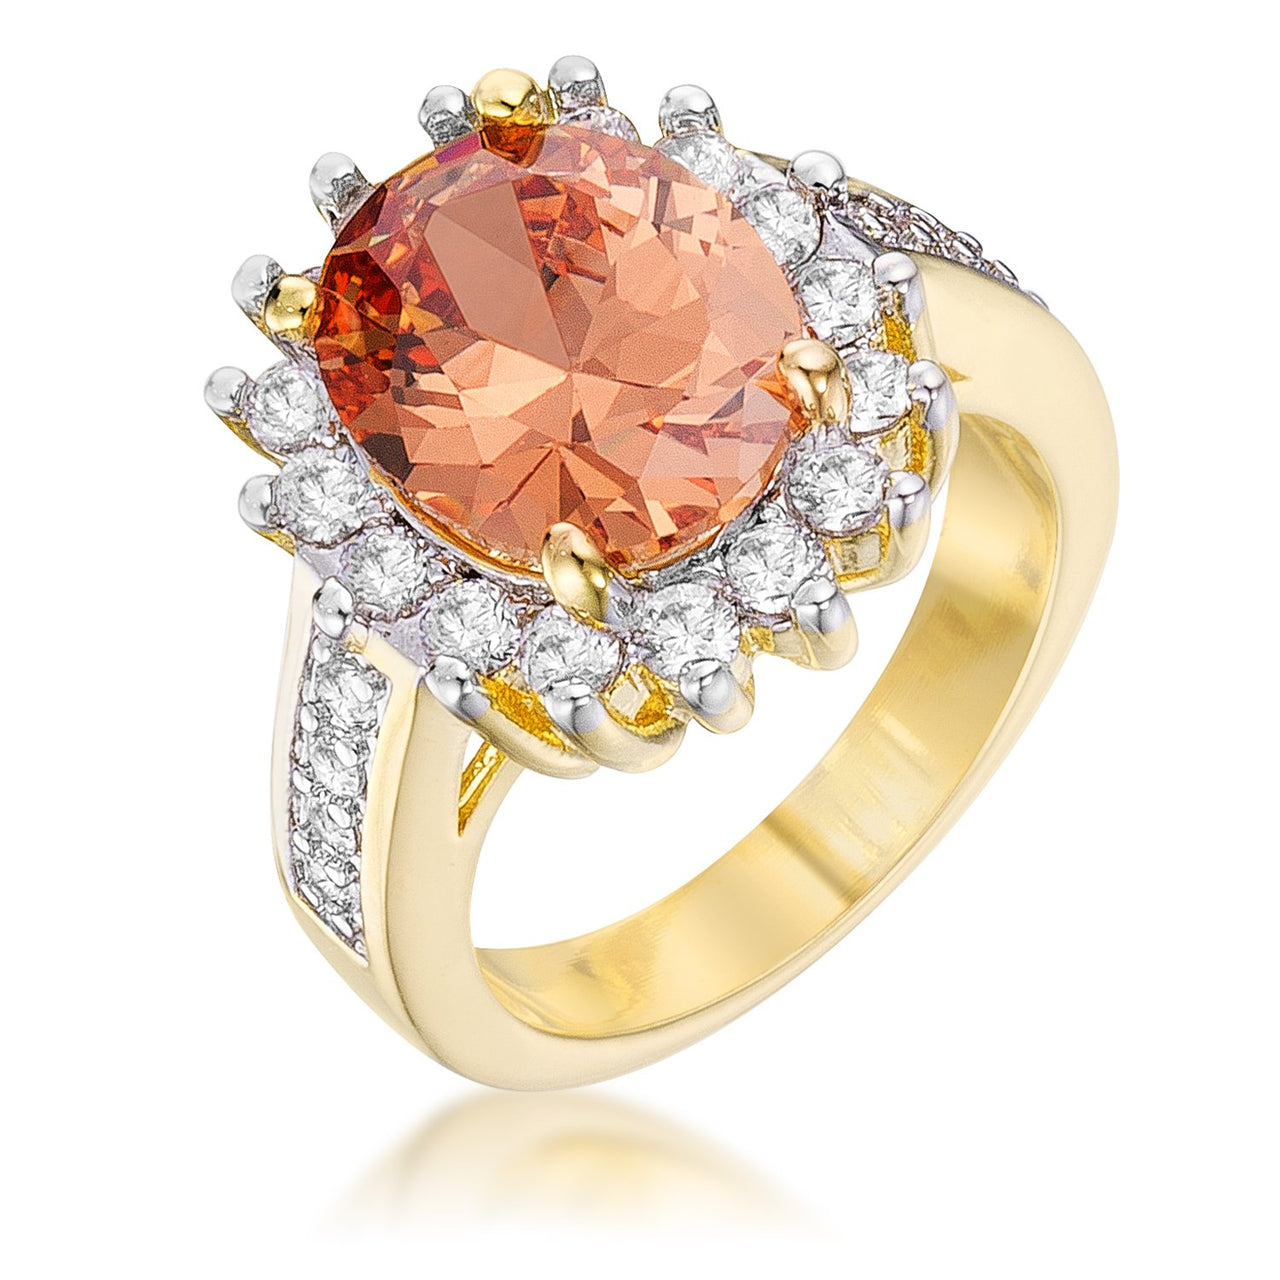 Champagne Cambridge Elegance Ring - Rings - KA Designs Online